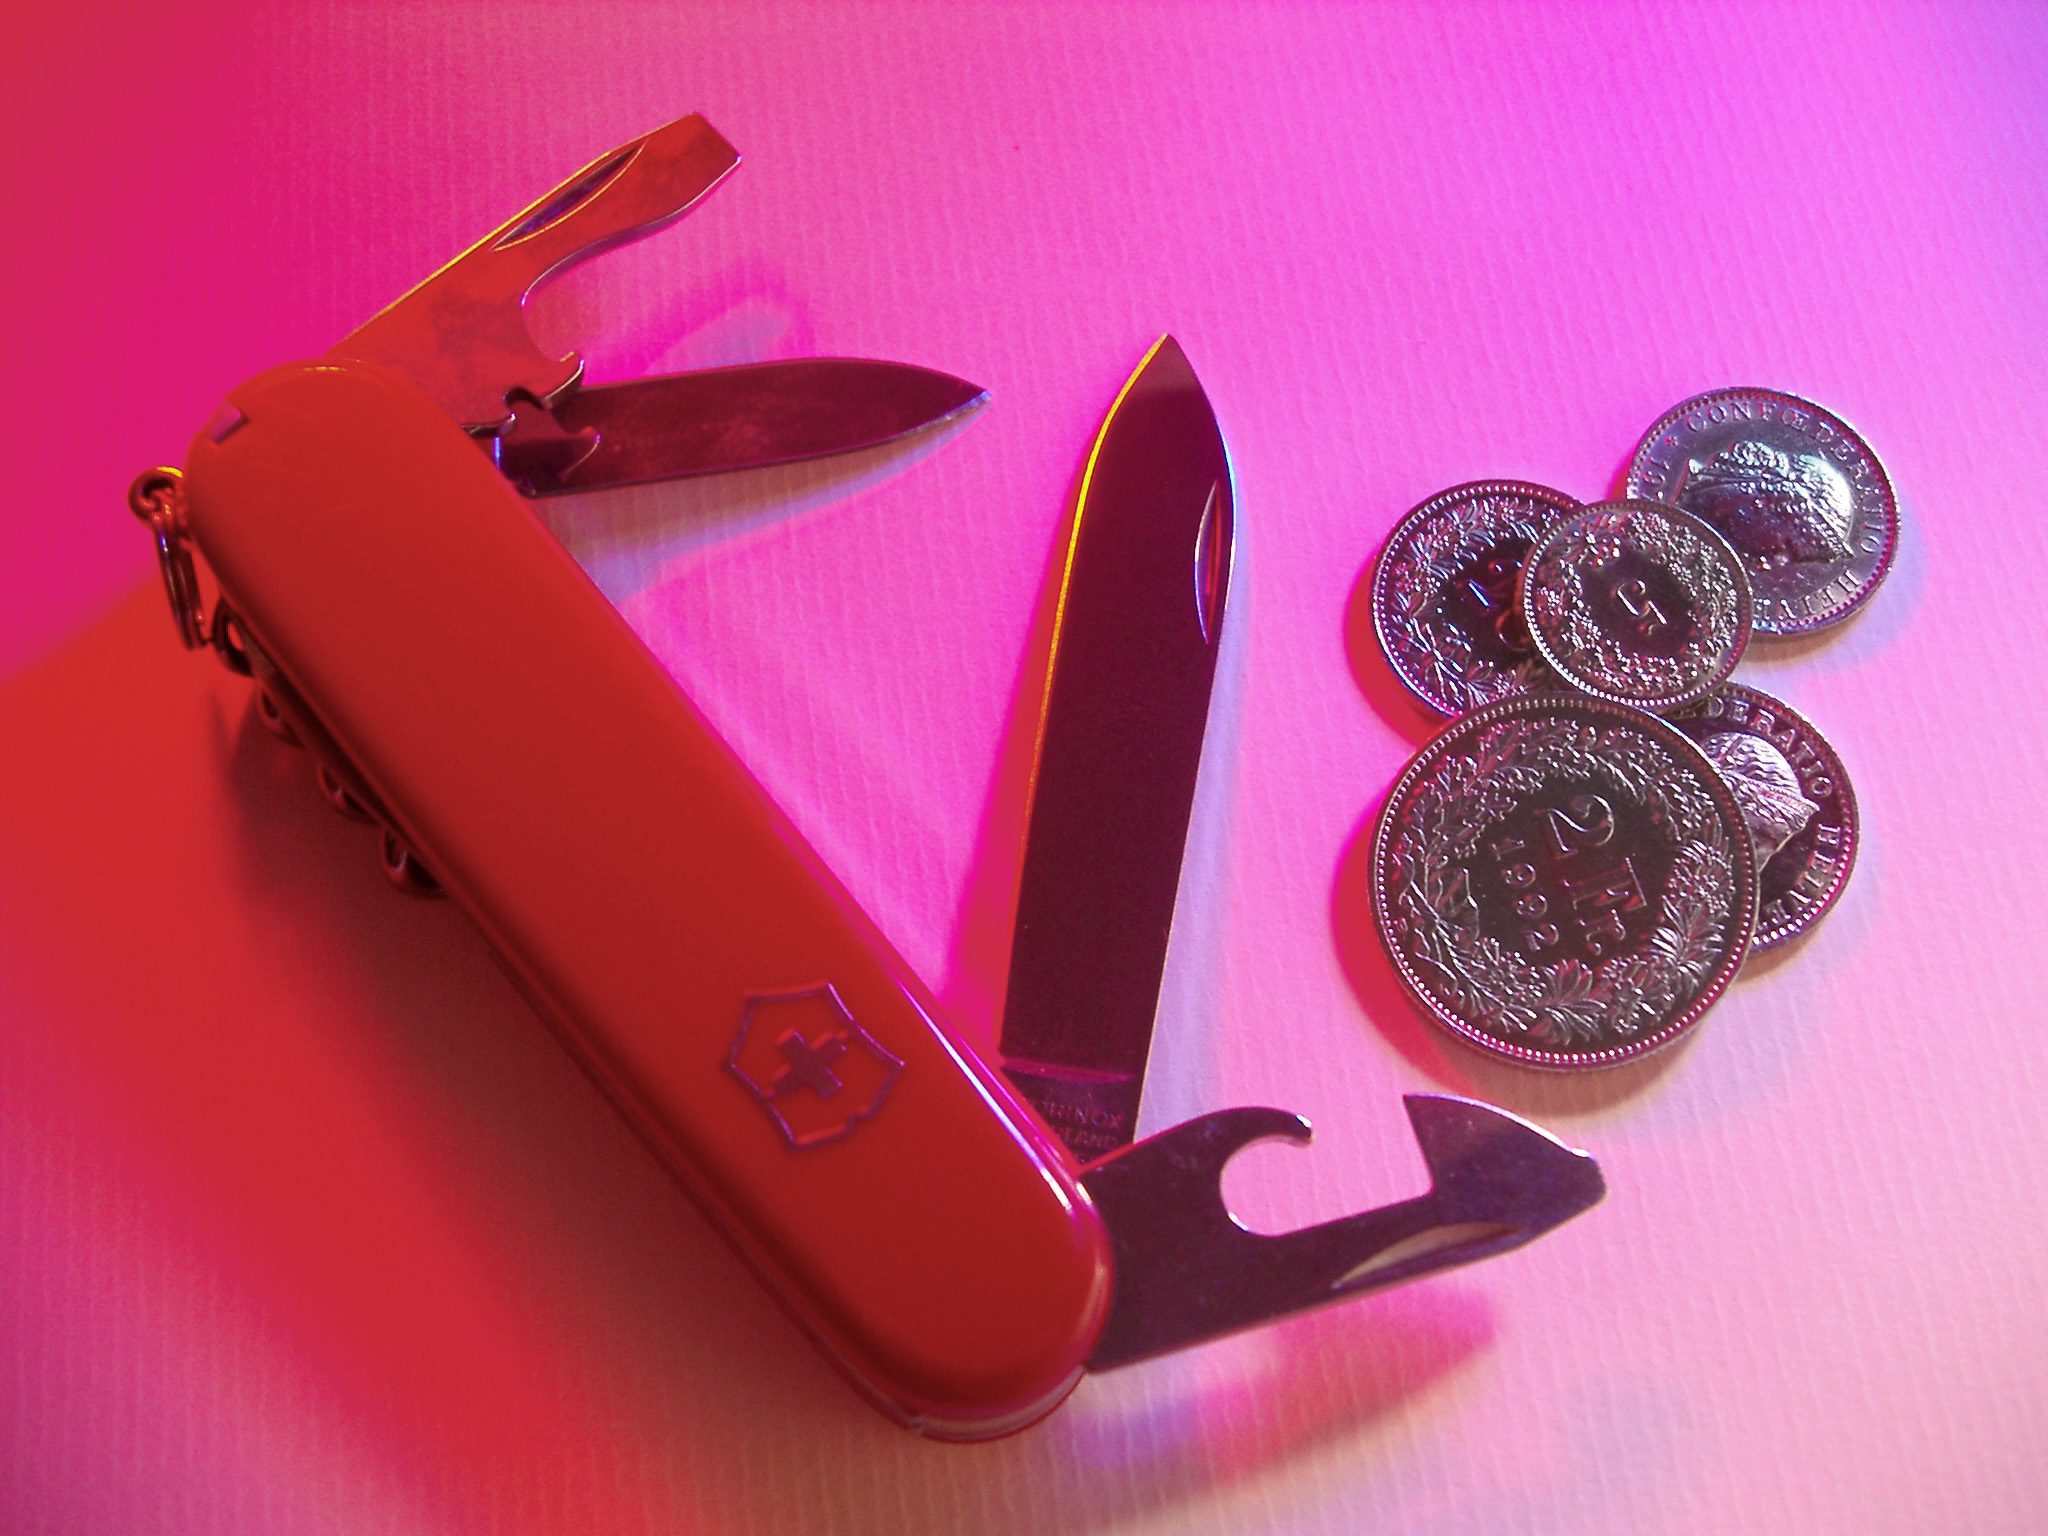 Swiss Army Knife with Swiss Francs on Pink Background Shot from Above